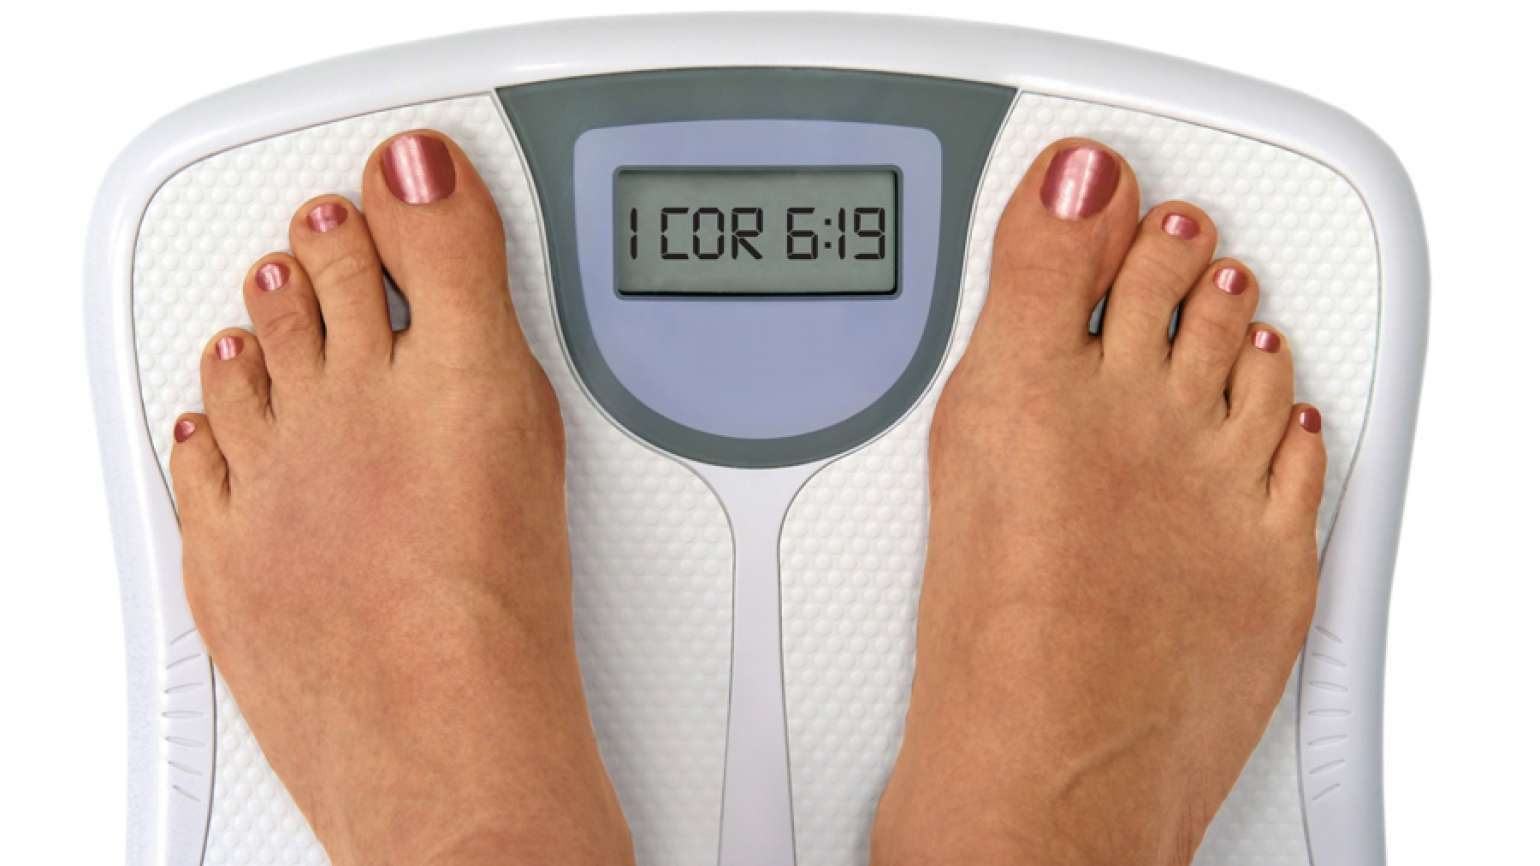 Feet on a scale that reads 1 Cor. 6:19